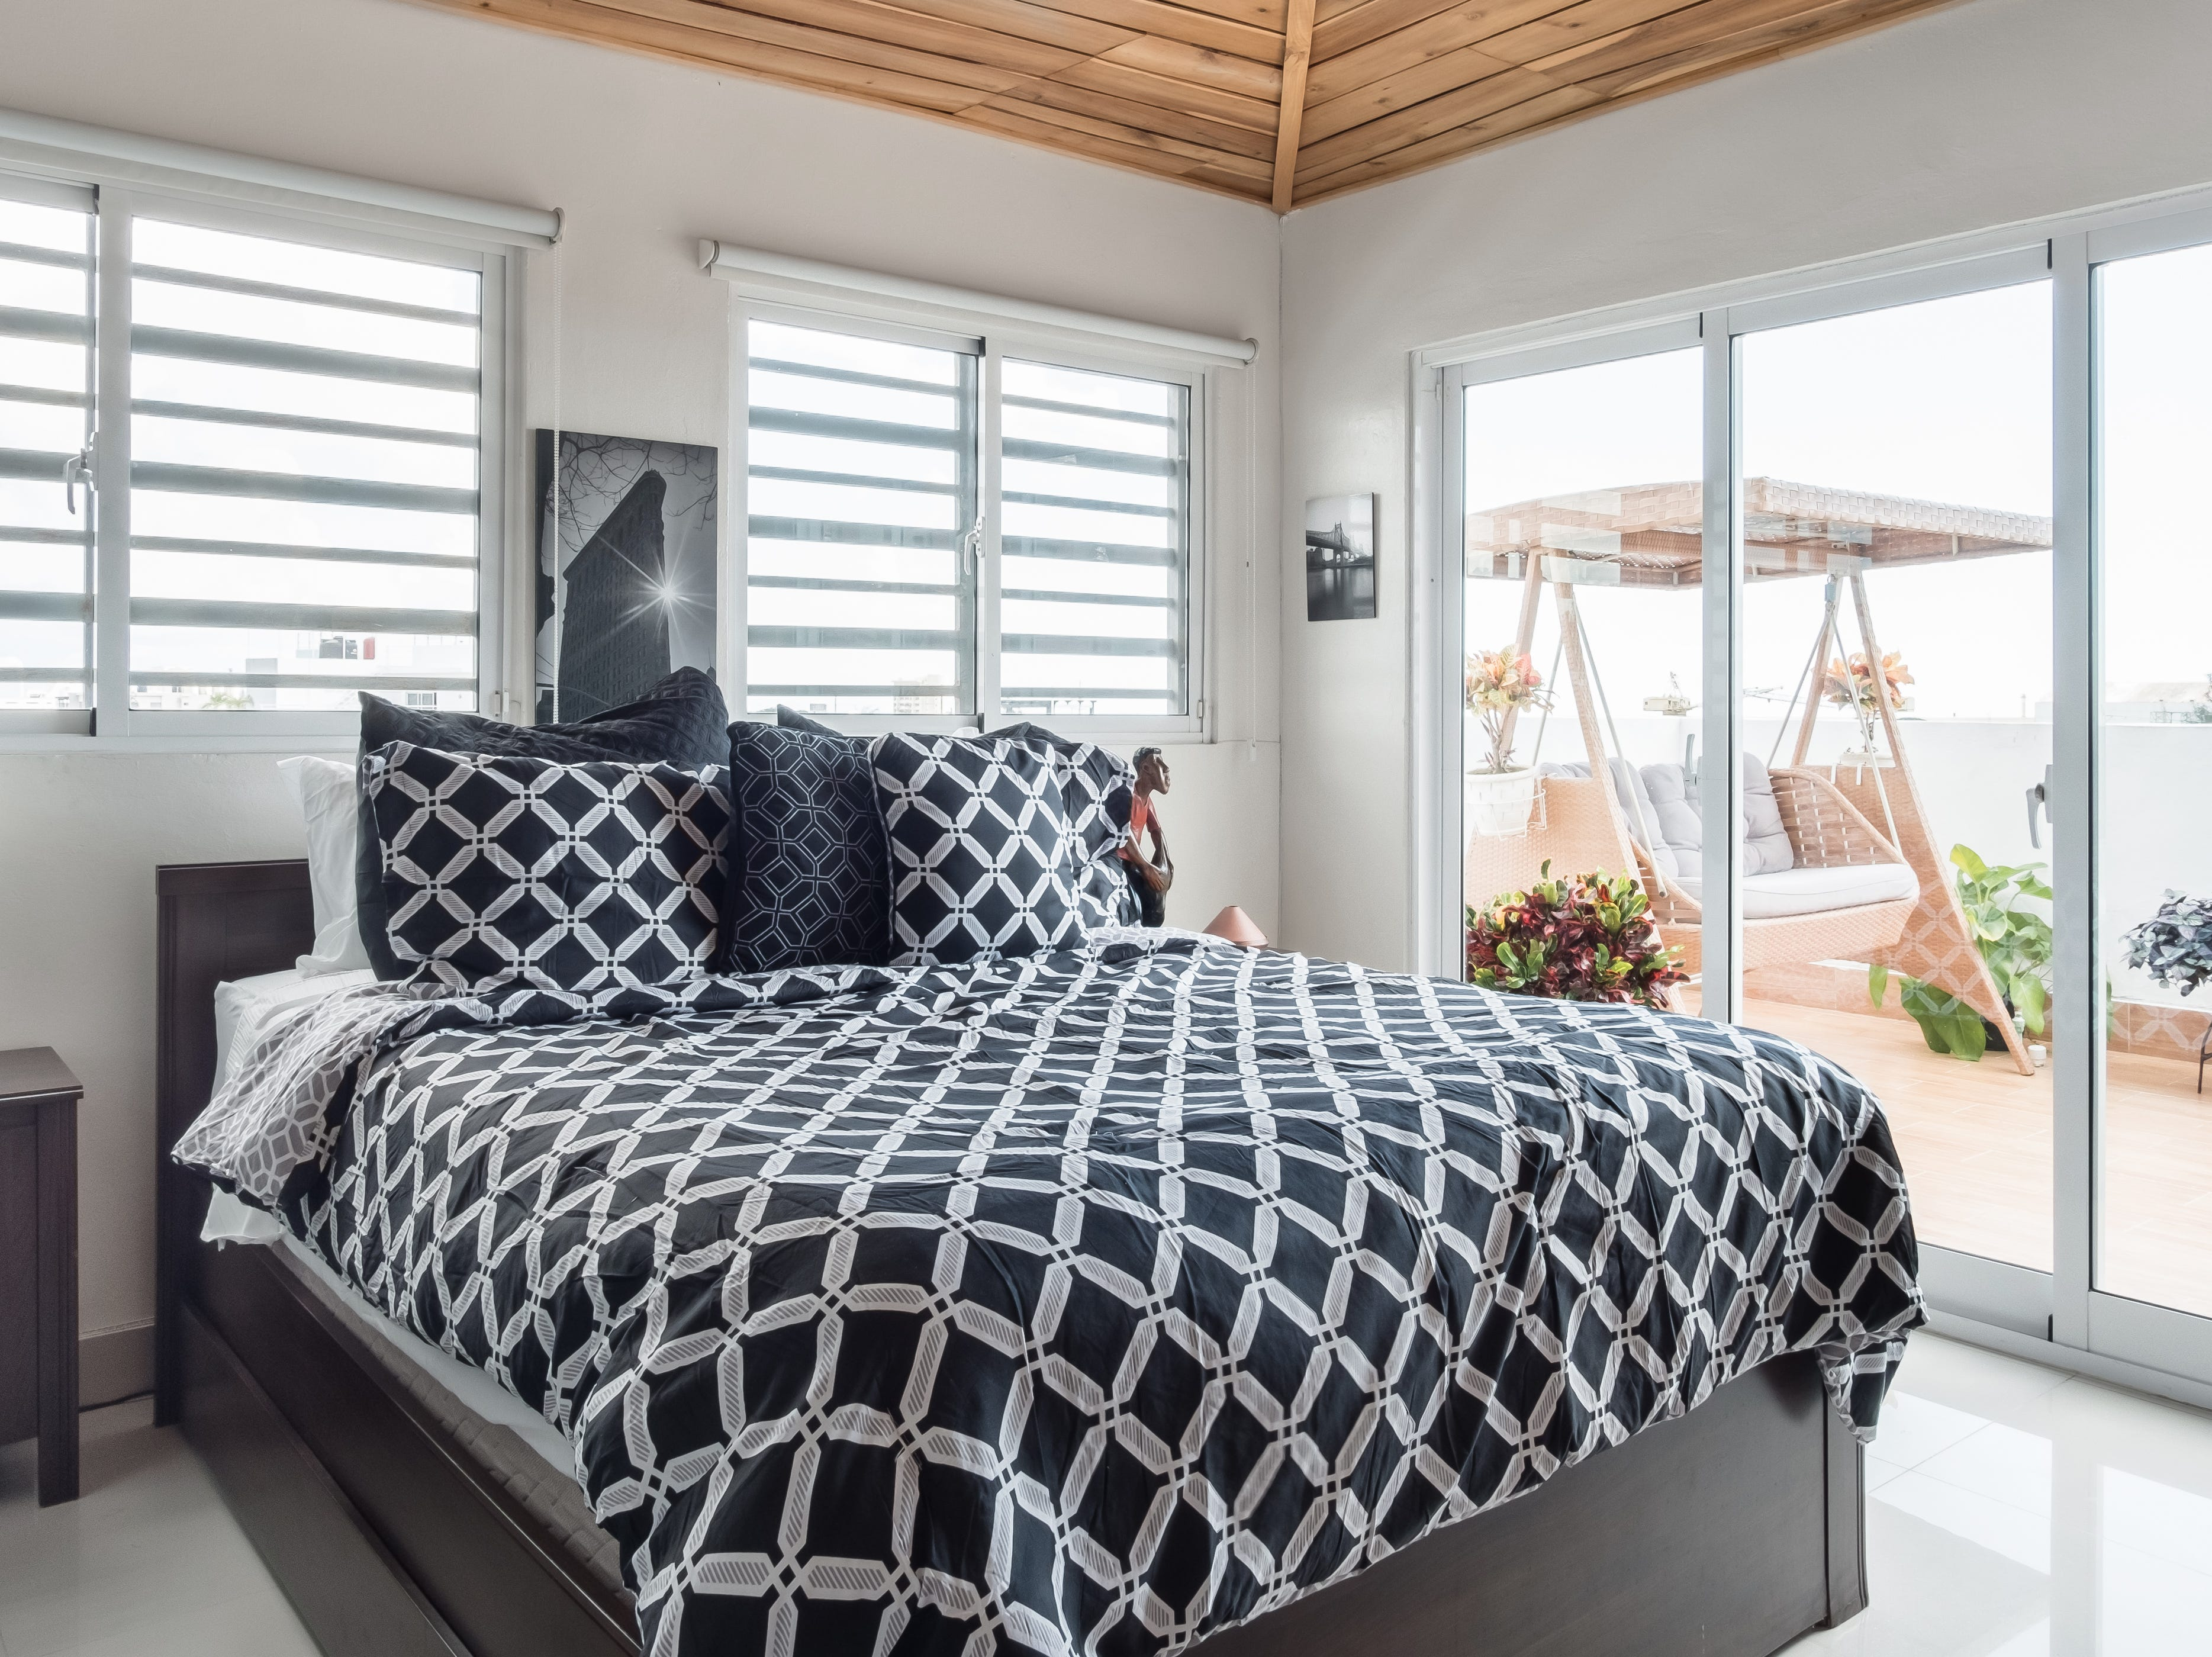 A bedroom at the apartment in Santo Domingo in the Dominican Republic